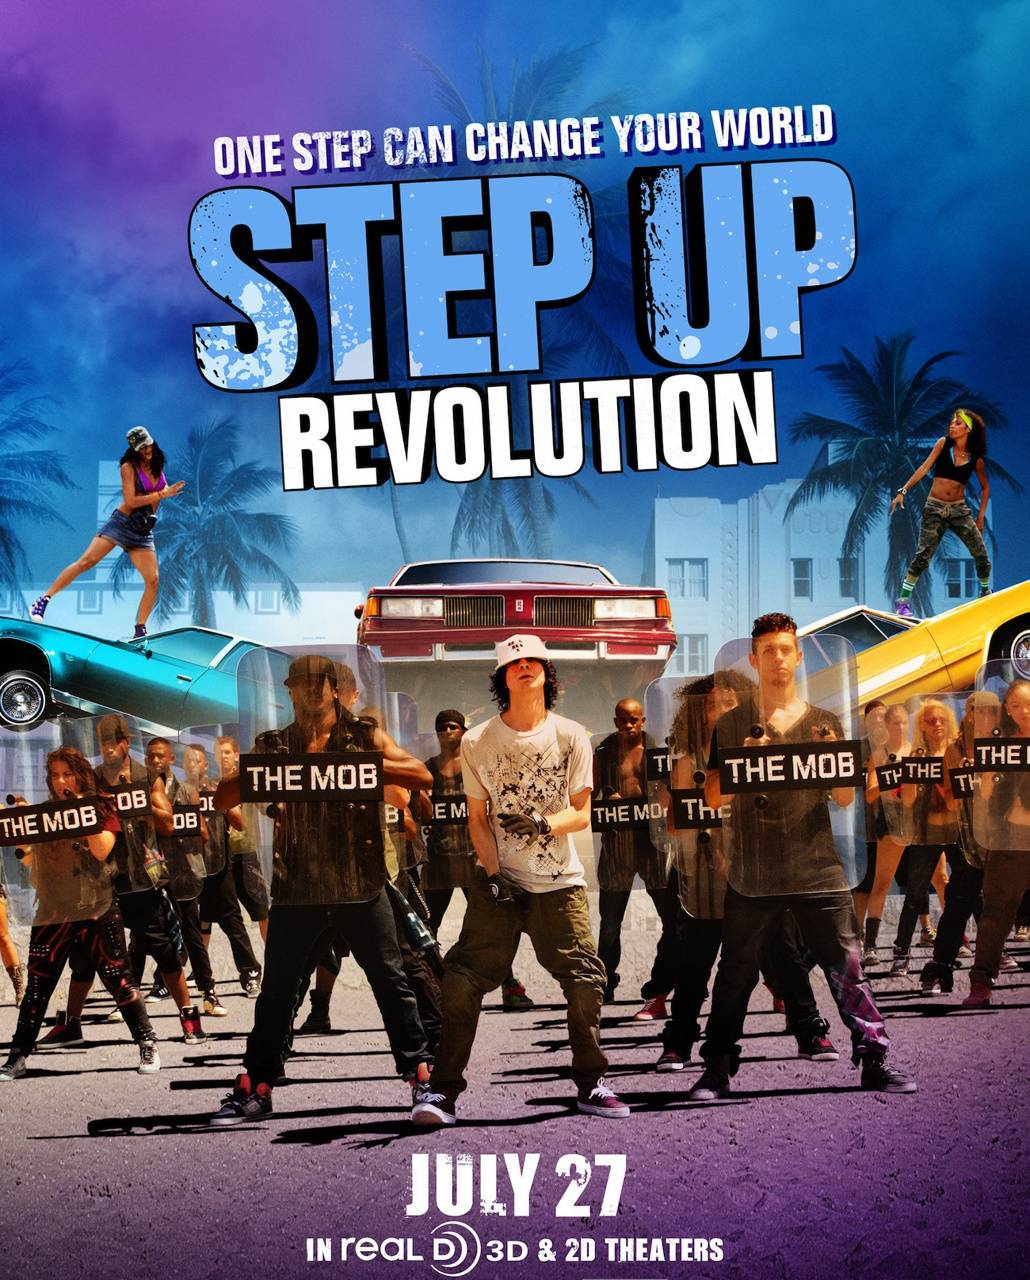 Step Up 4 Poster 2